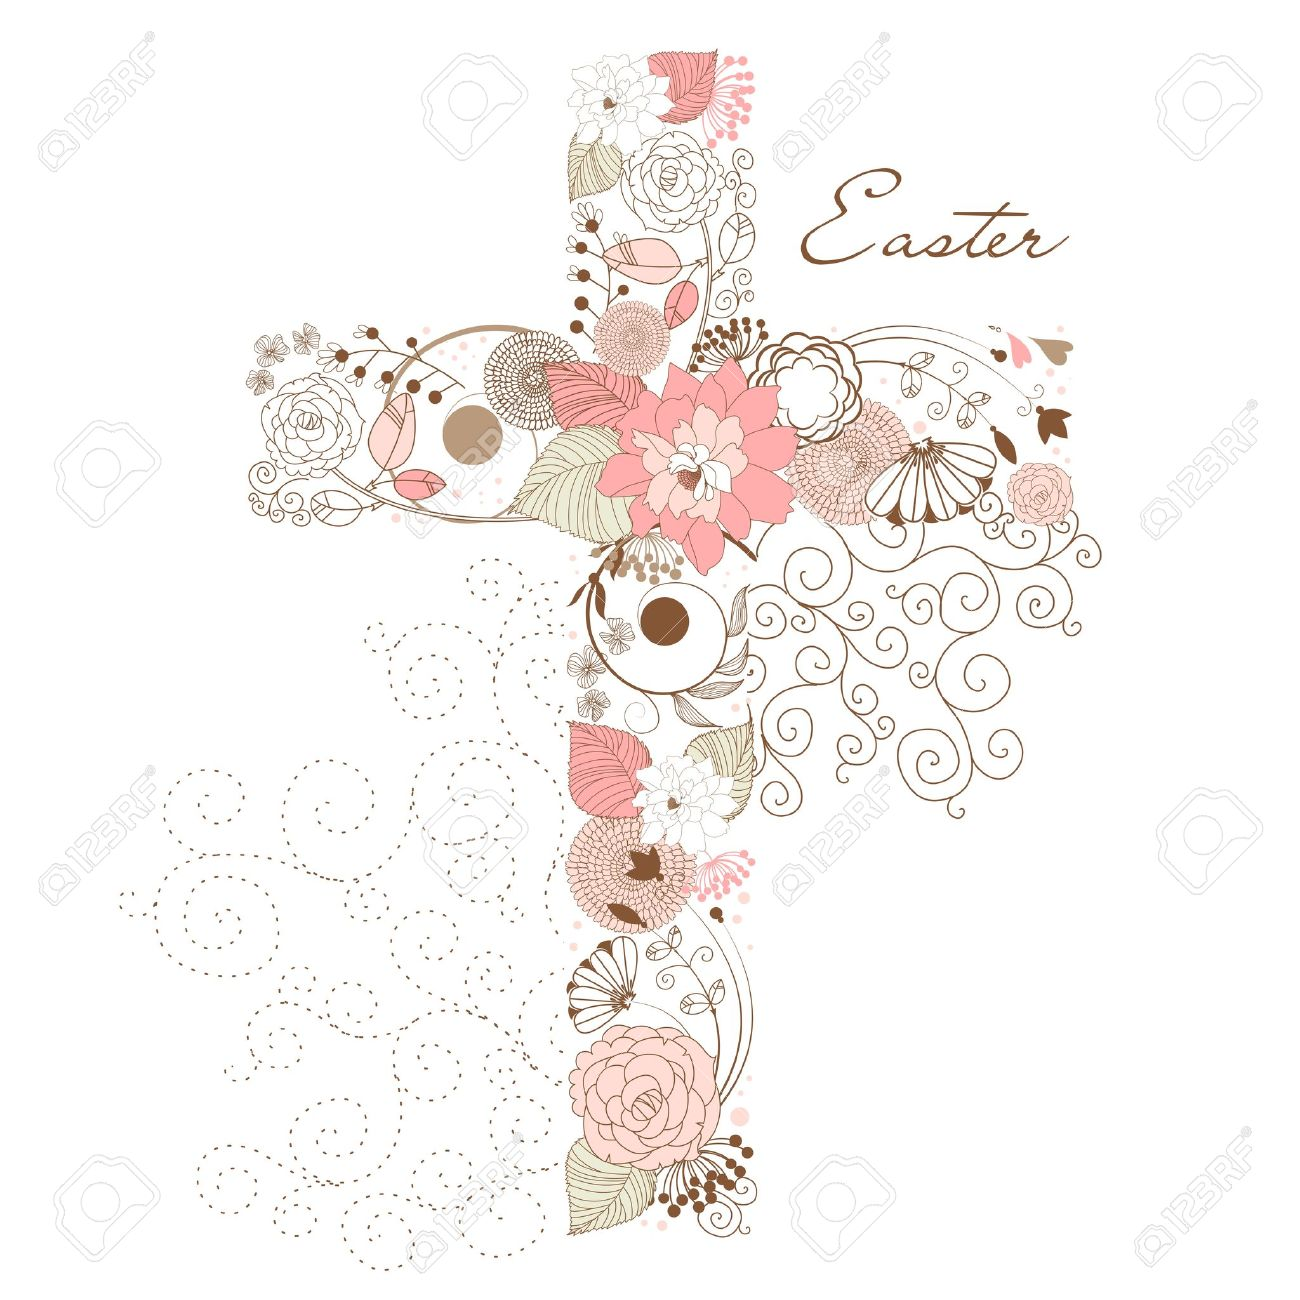 Clipart cross with flowers 1 » Clipart Station.